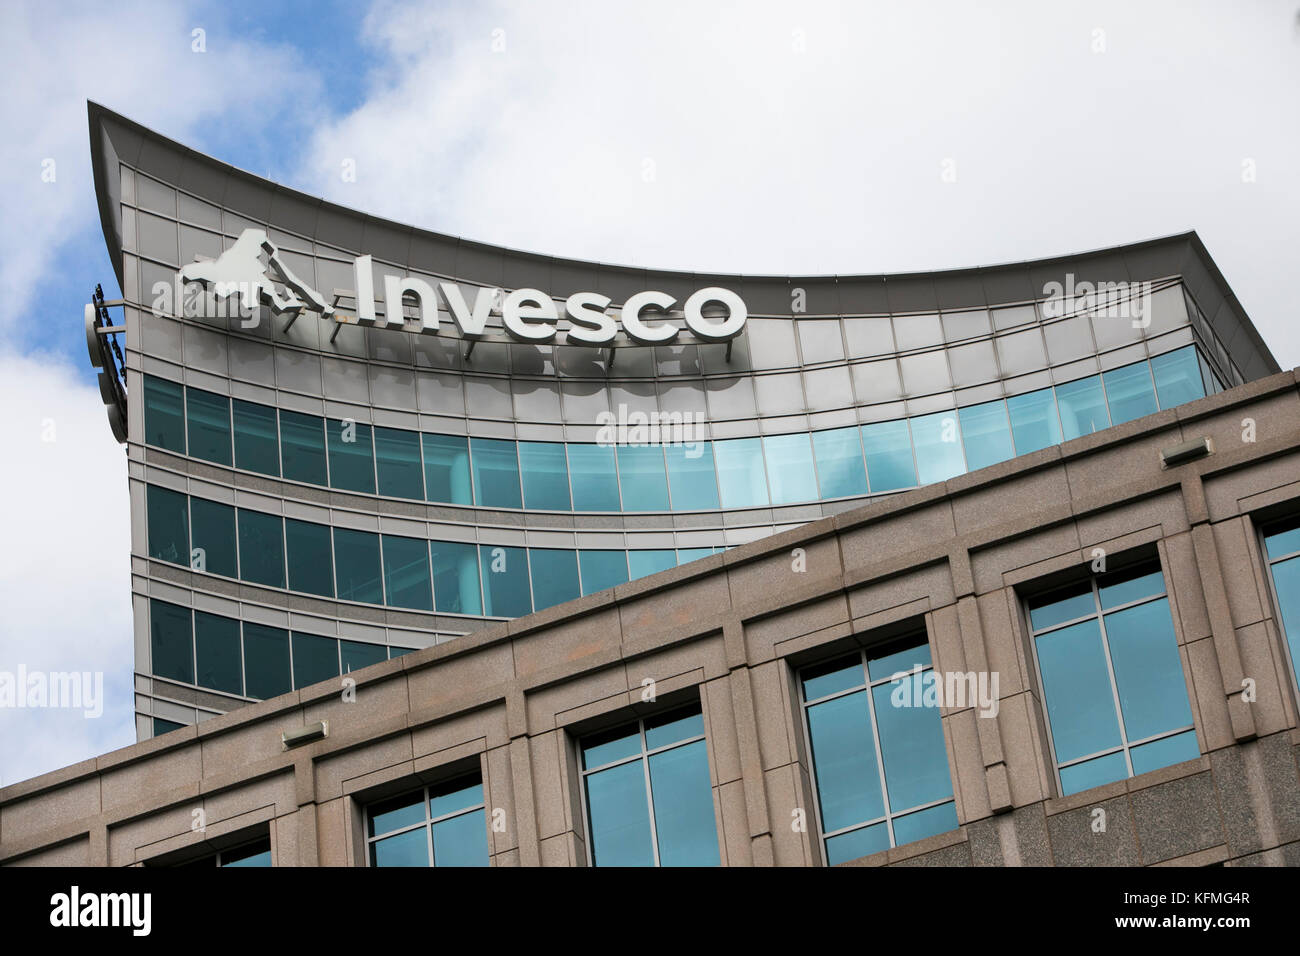 A logo sign outside of the headquarters of Invesco Ltd., in Atlanta, Georgia on October 7, 2017. - Stock Image